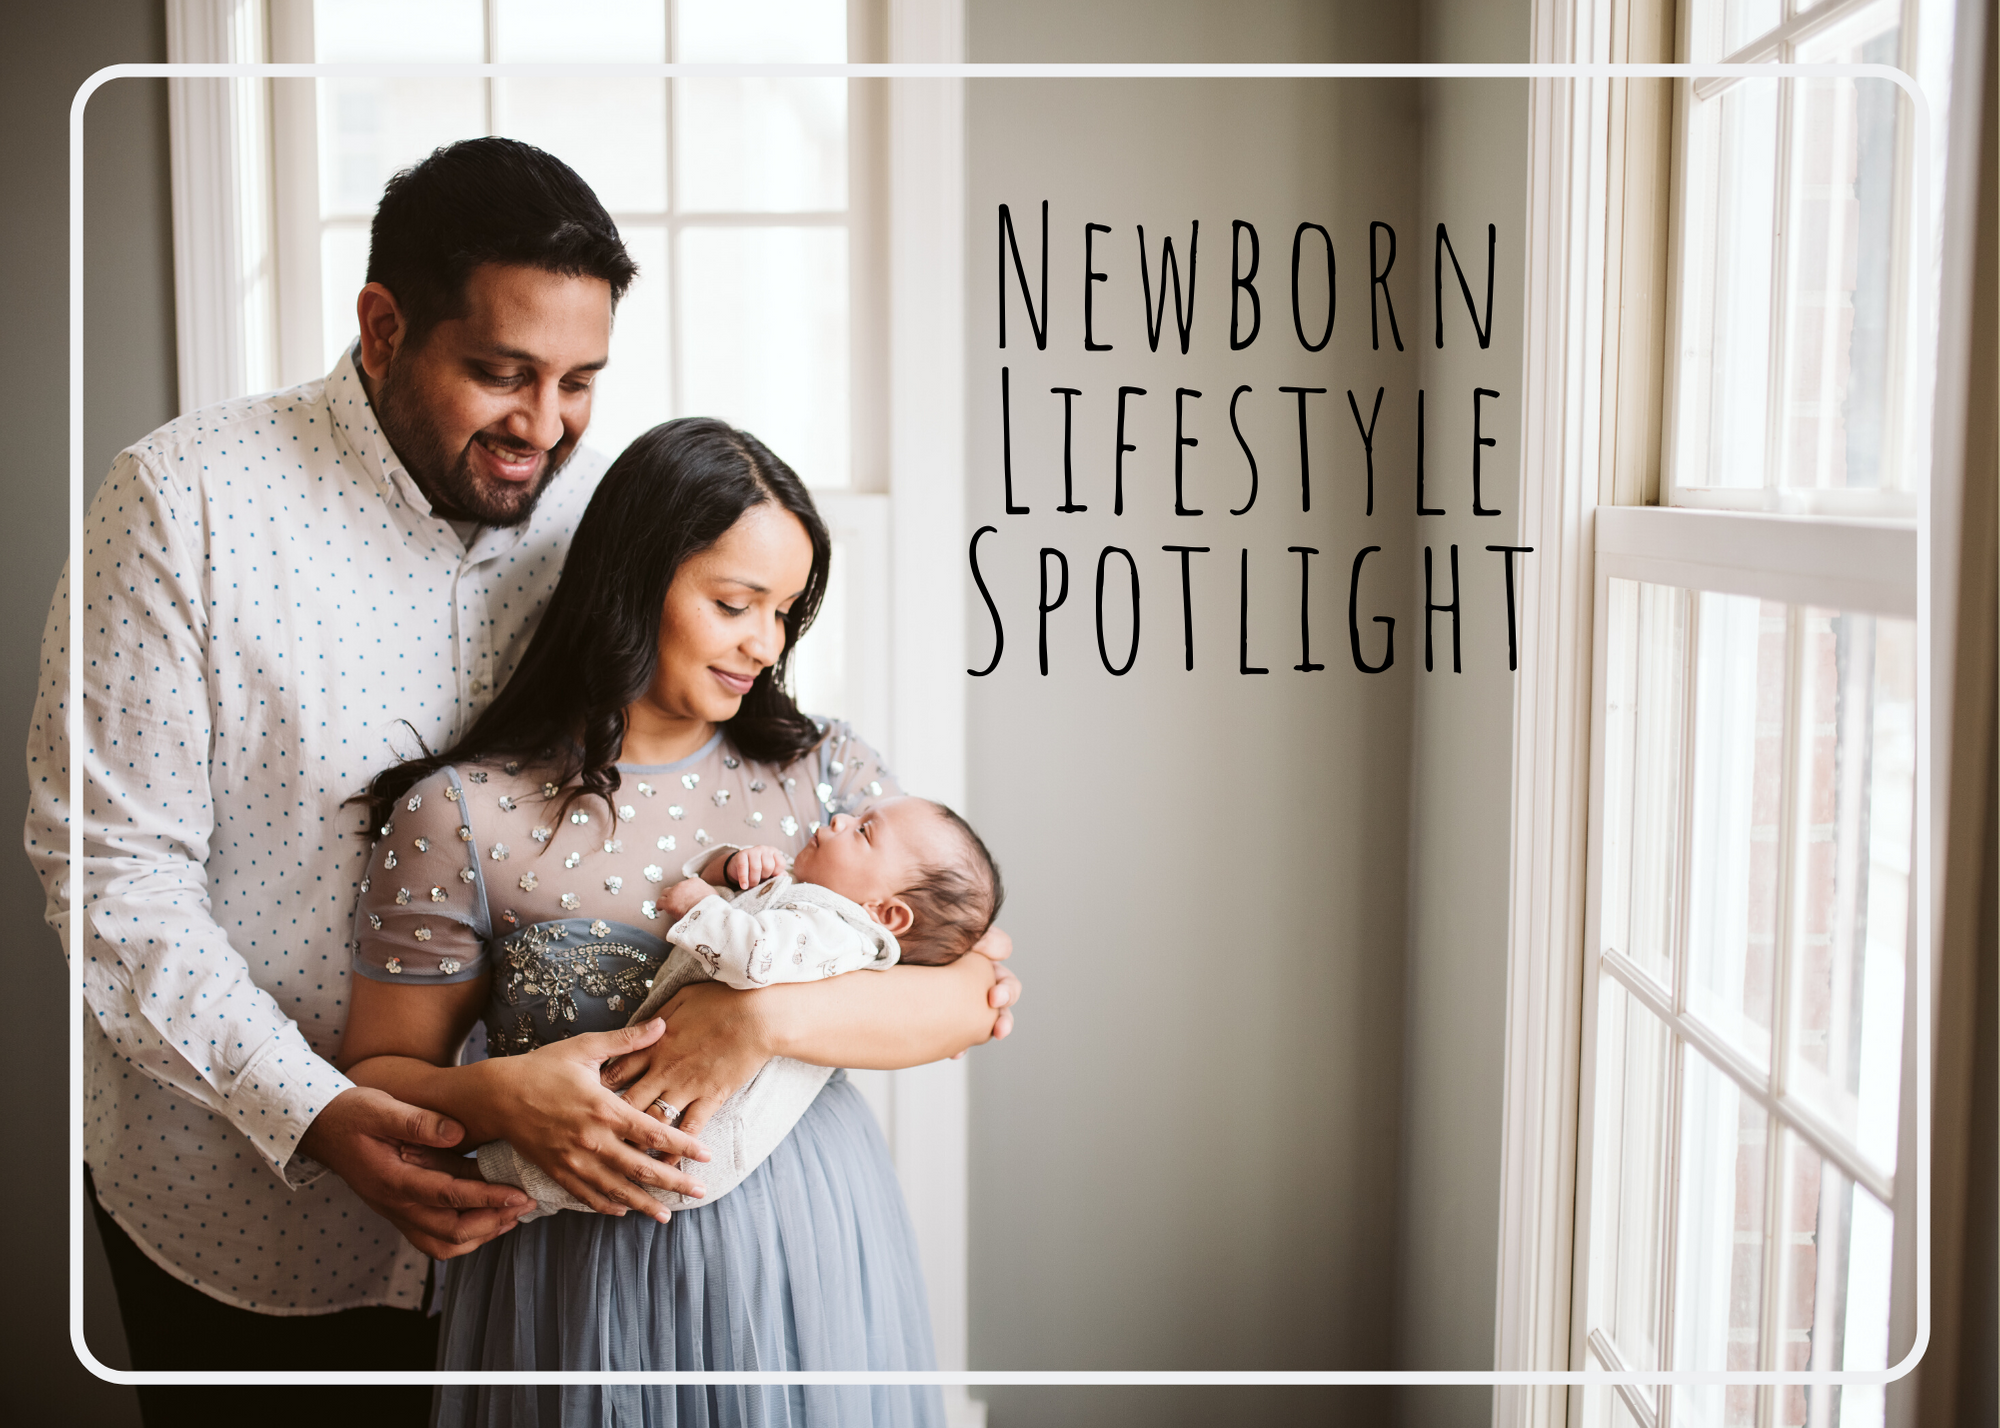 Newborn Lifestyle Session Spotlight – Pittsburgh Photographer